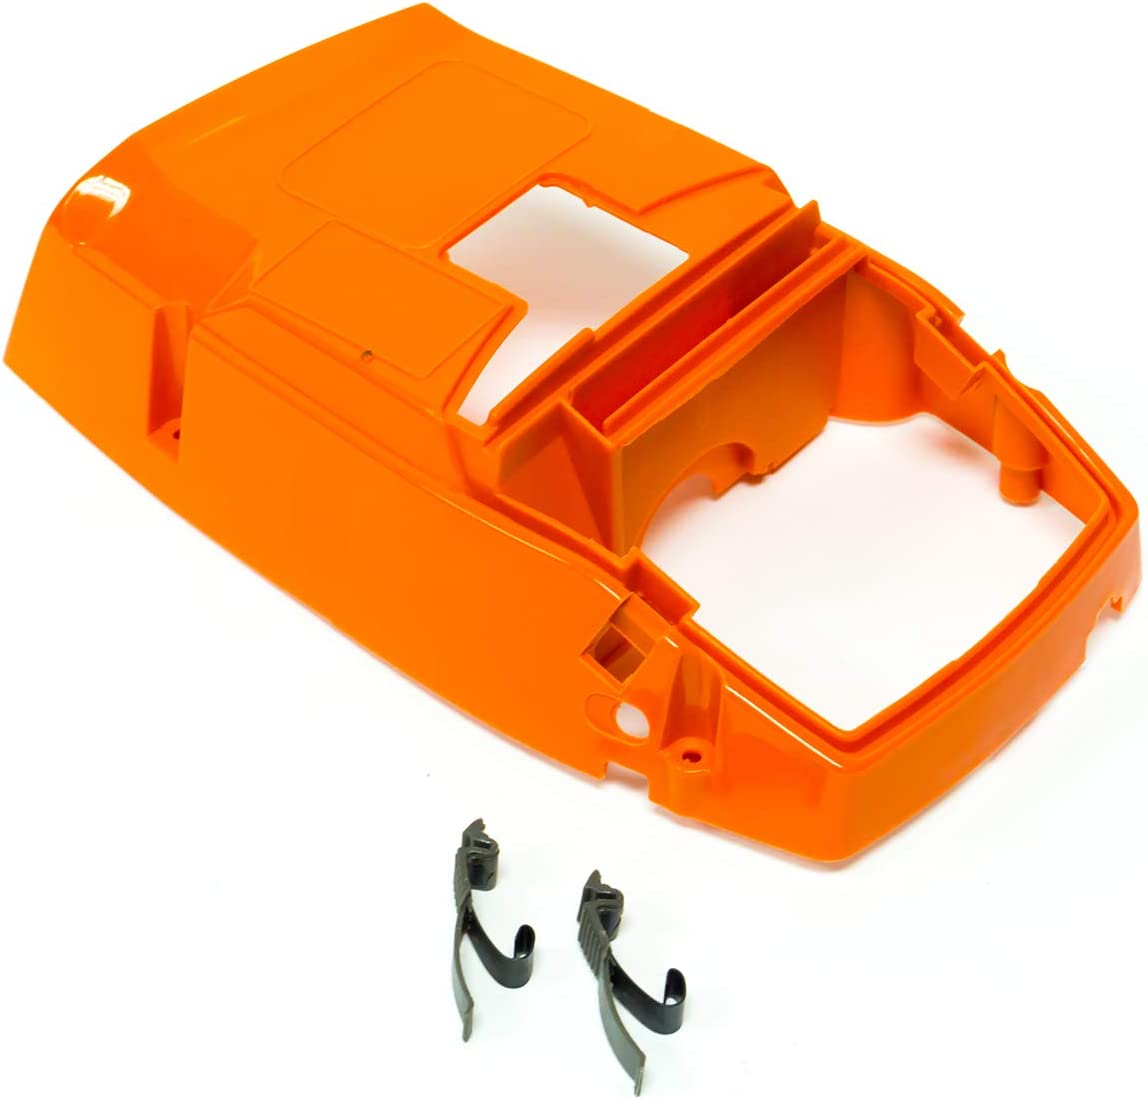 Shroud Top Cover for Husqvarna 362 365 371 372 Chainsaws 503 62 78-02